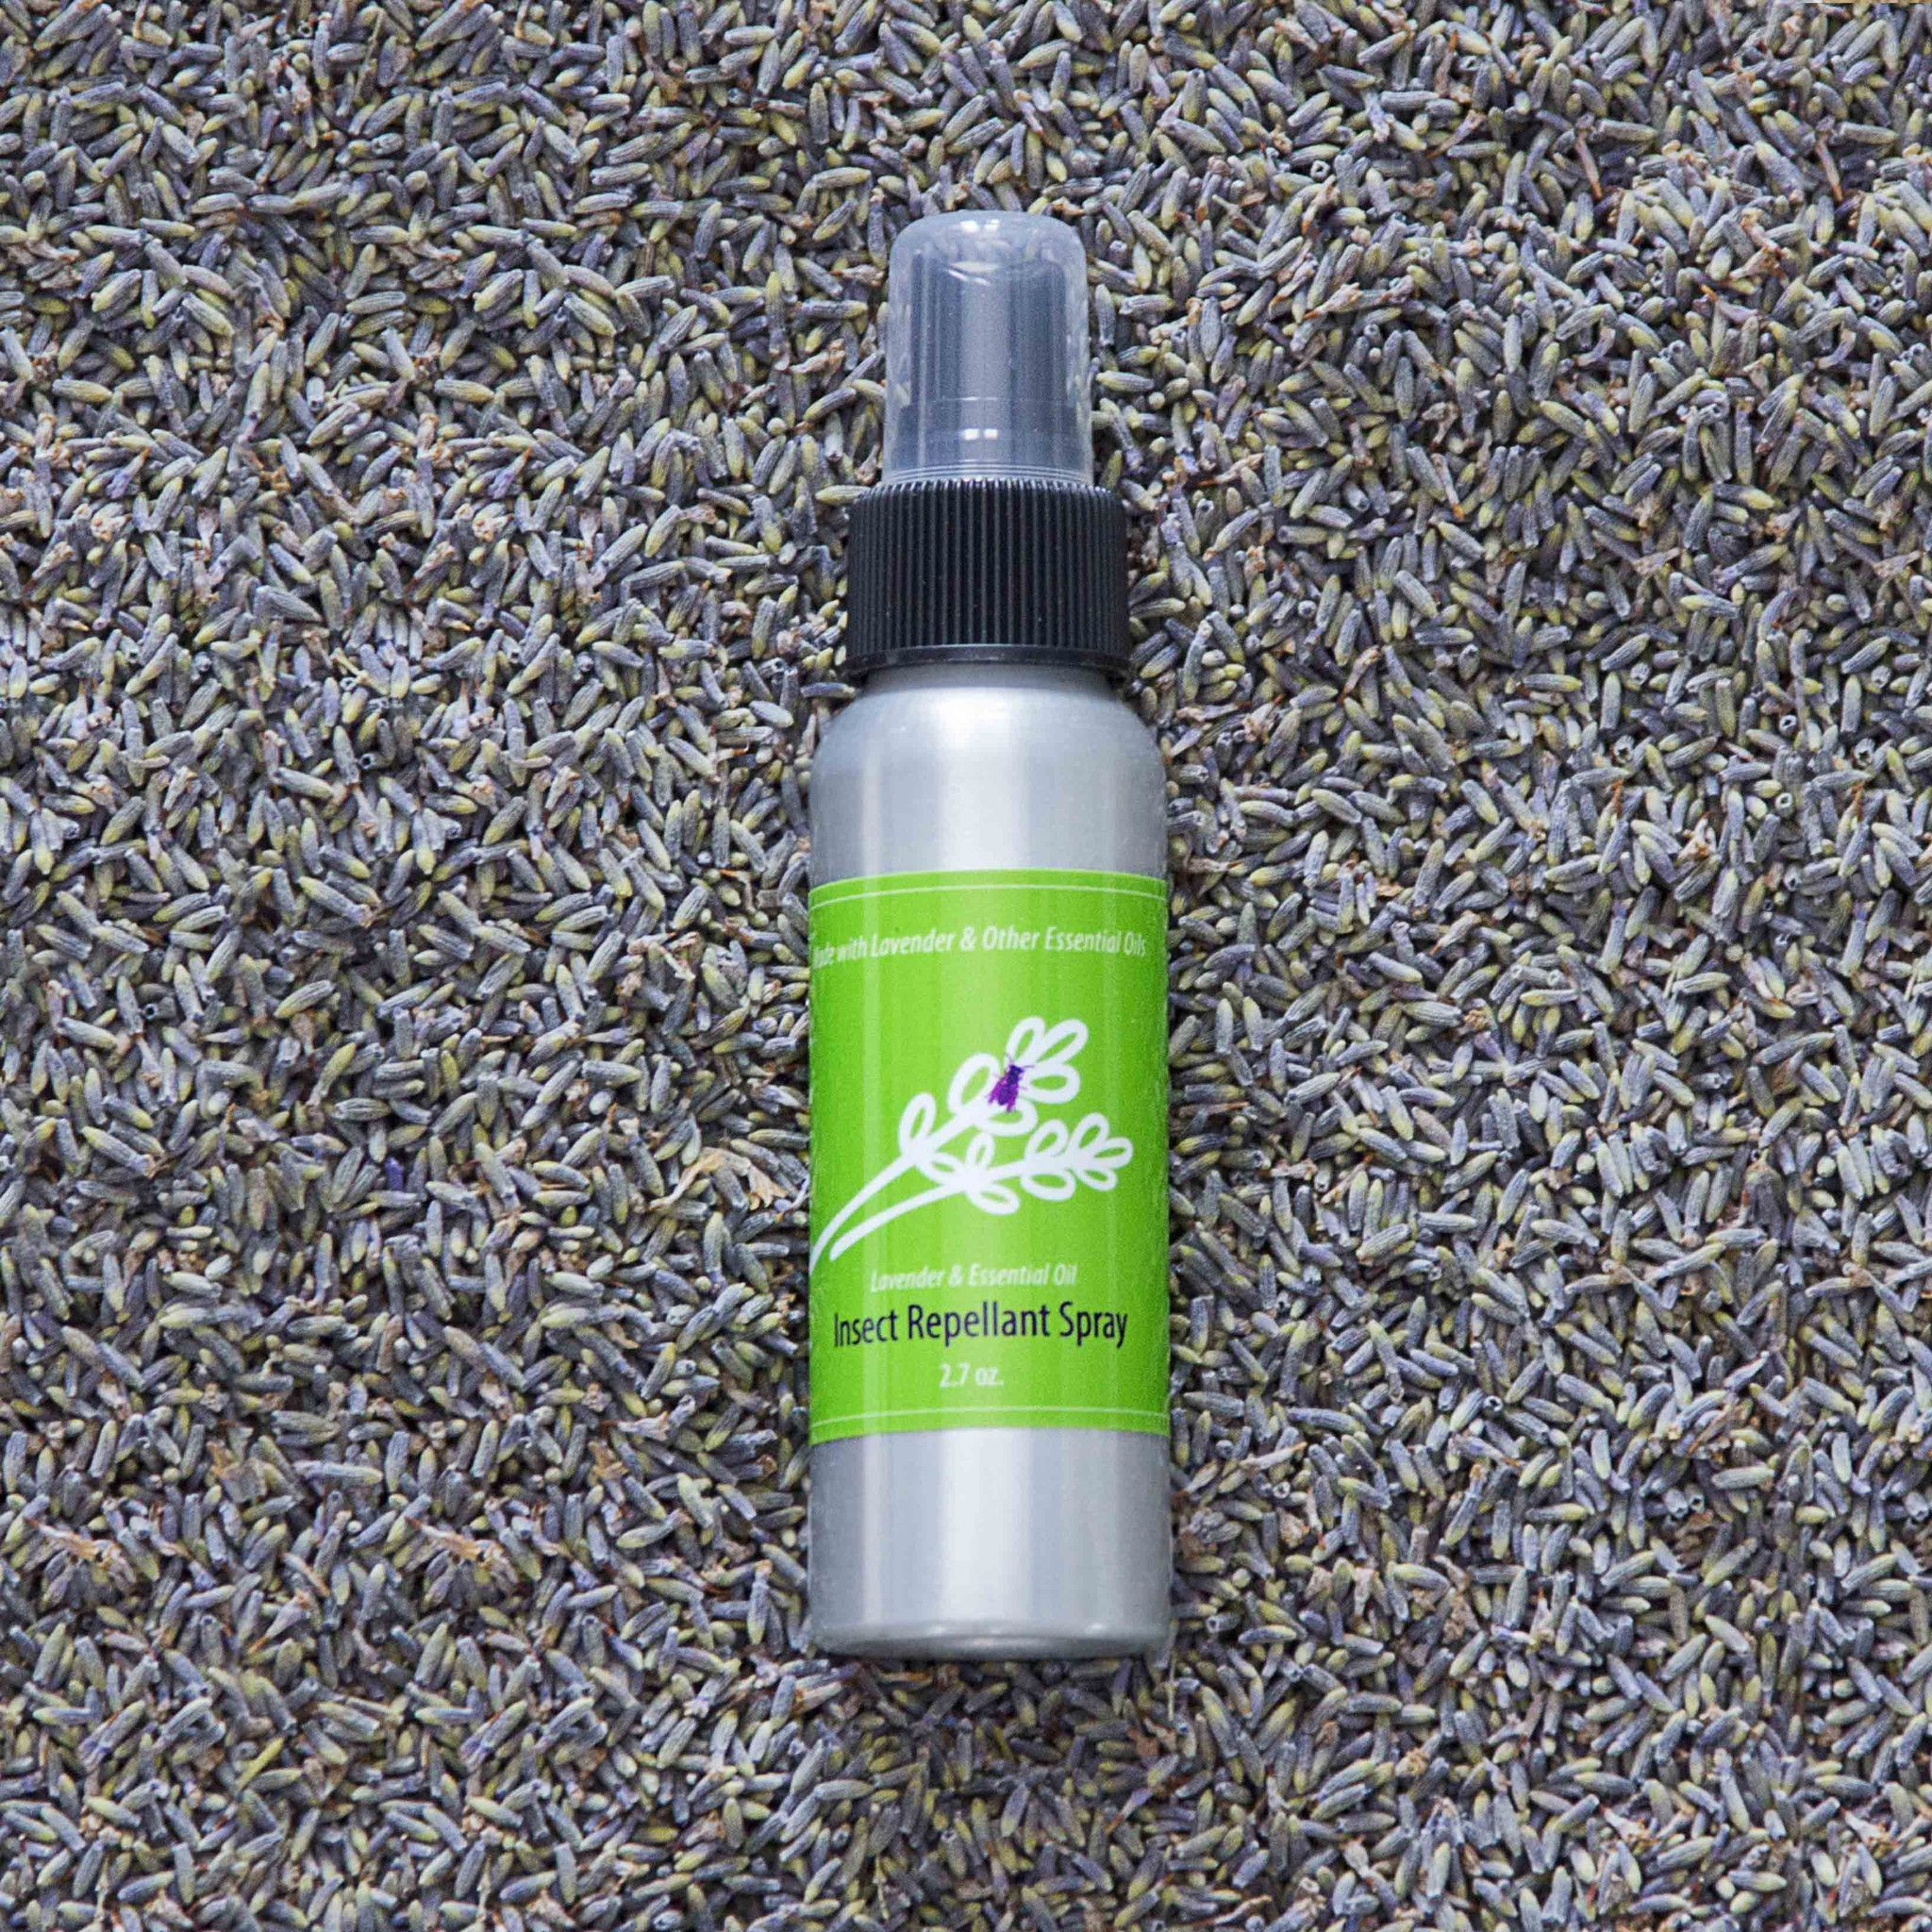 Lavender Insect Repellant Spray 2.7 oz Insect repellent